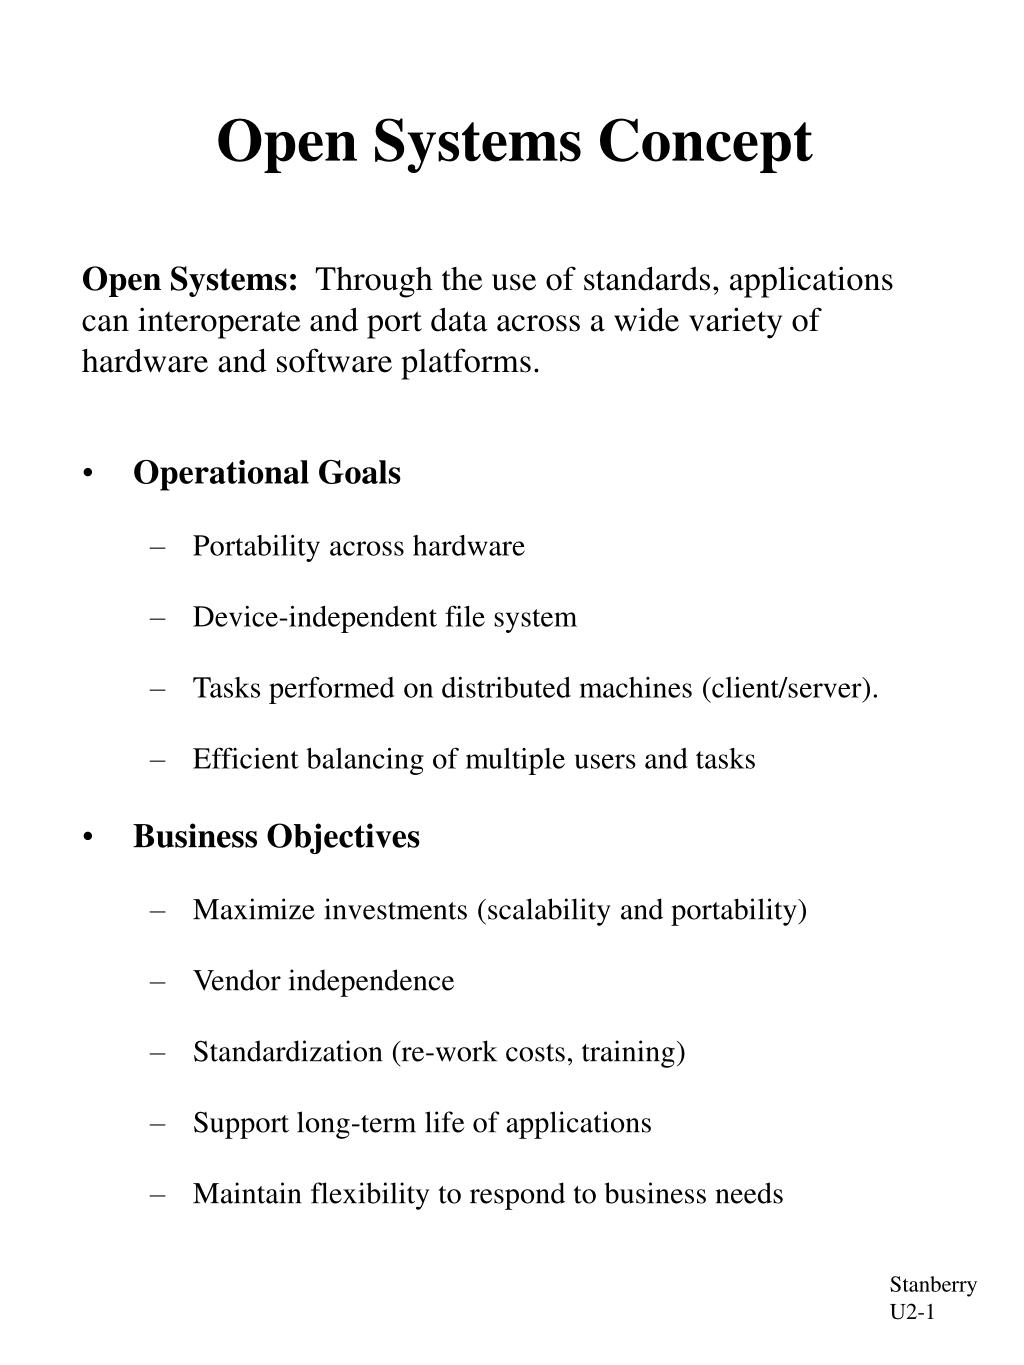 Open Systems Concept